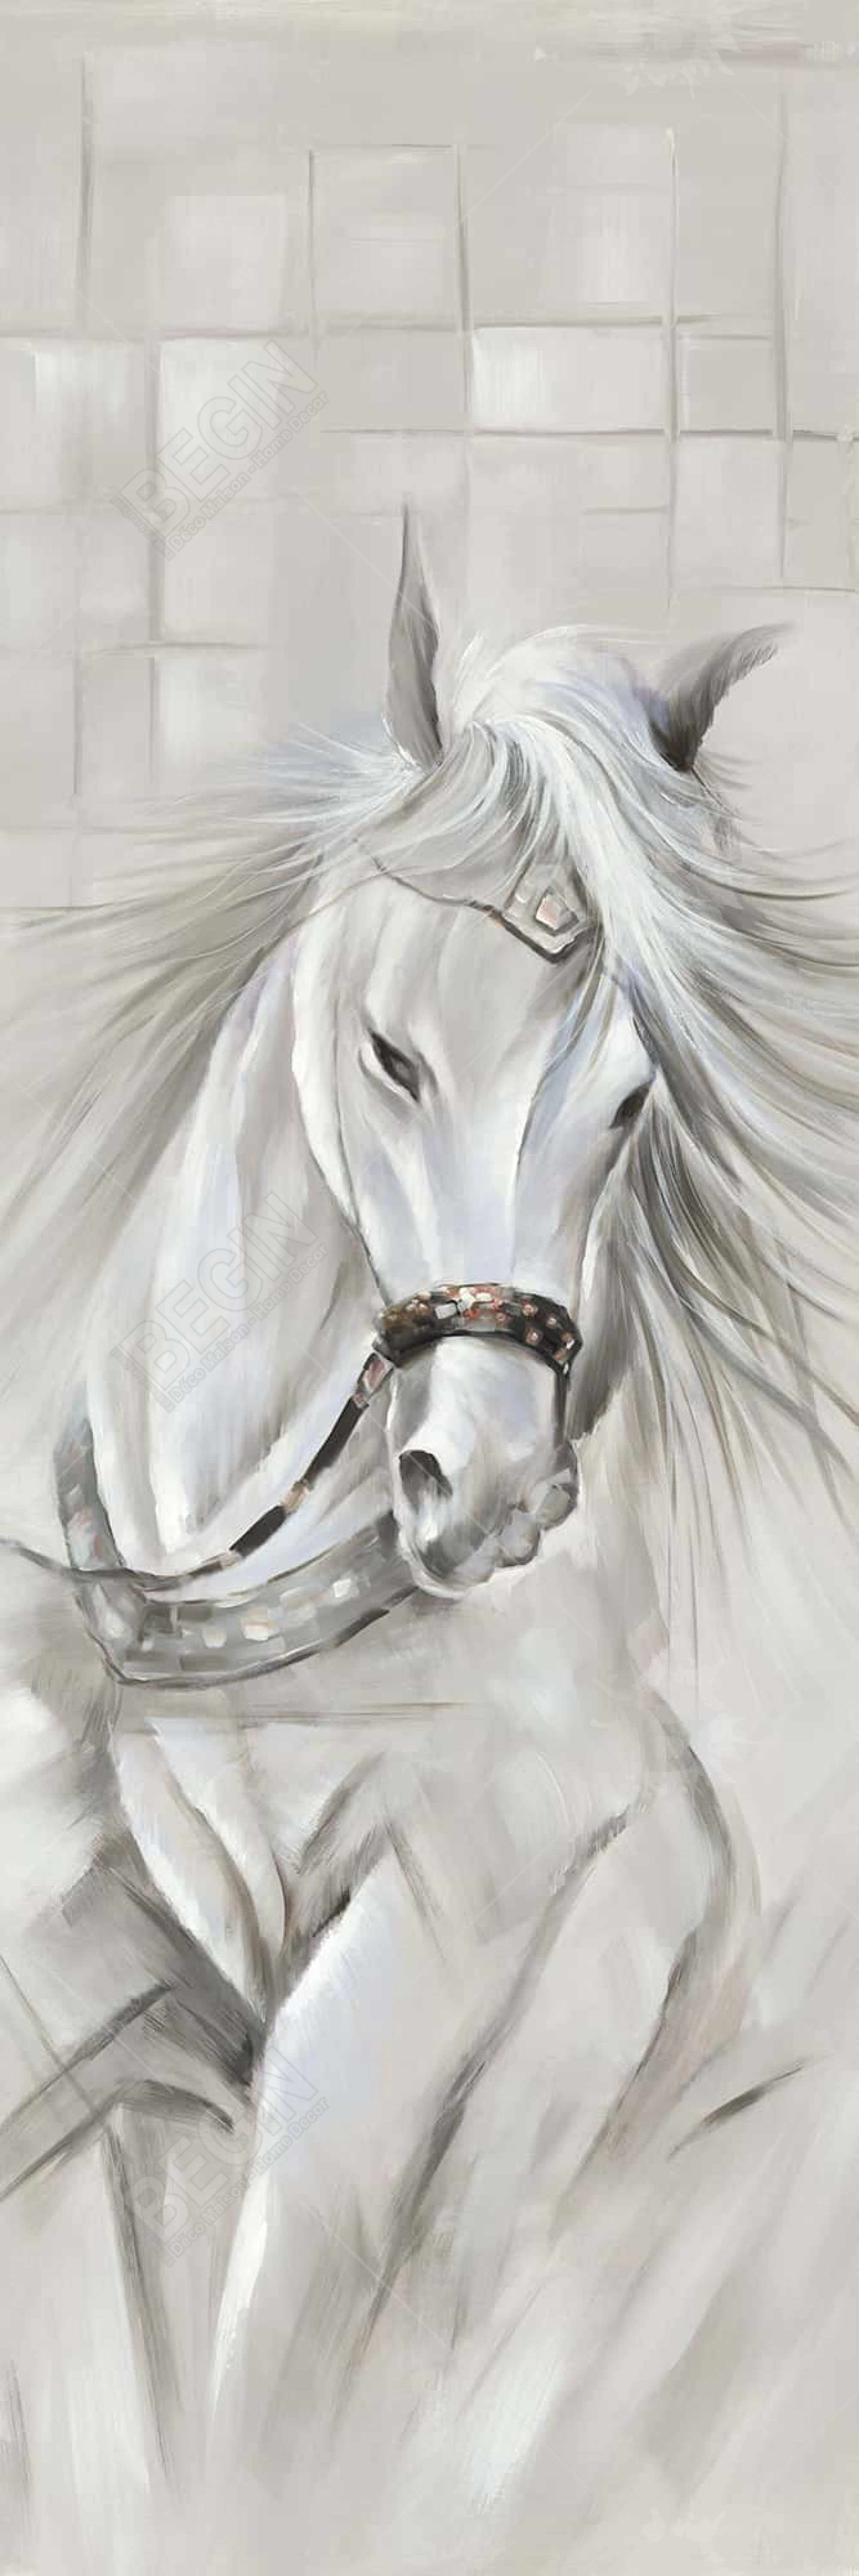 White horse with his mane in the wind